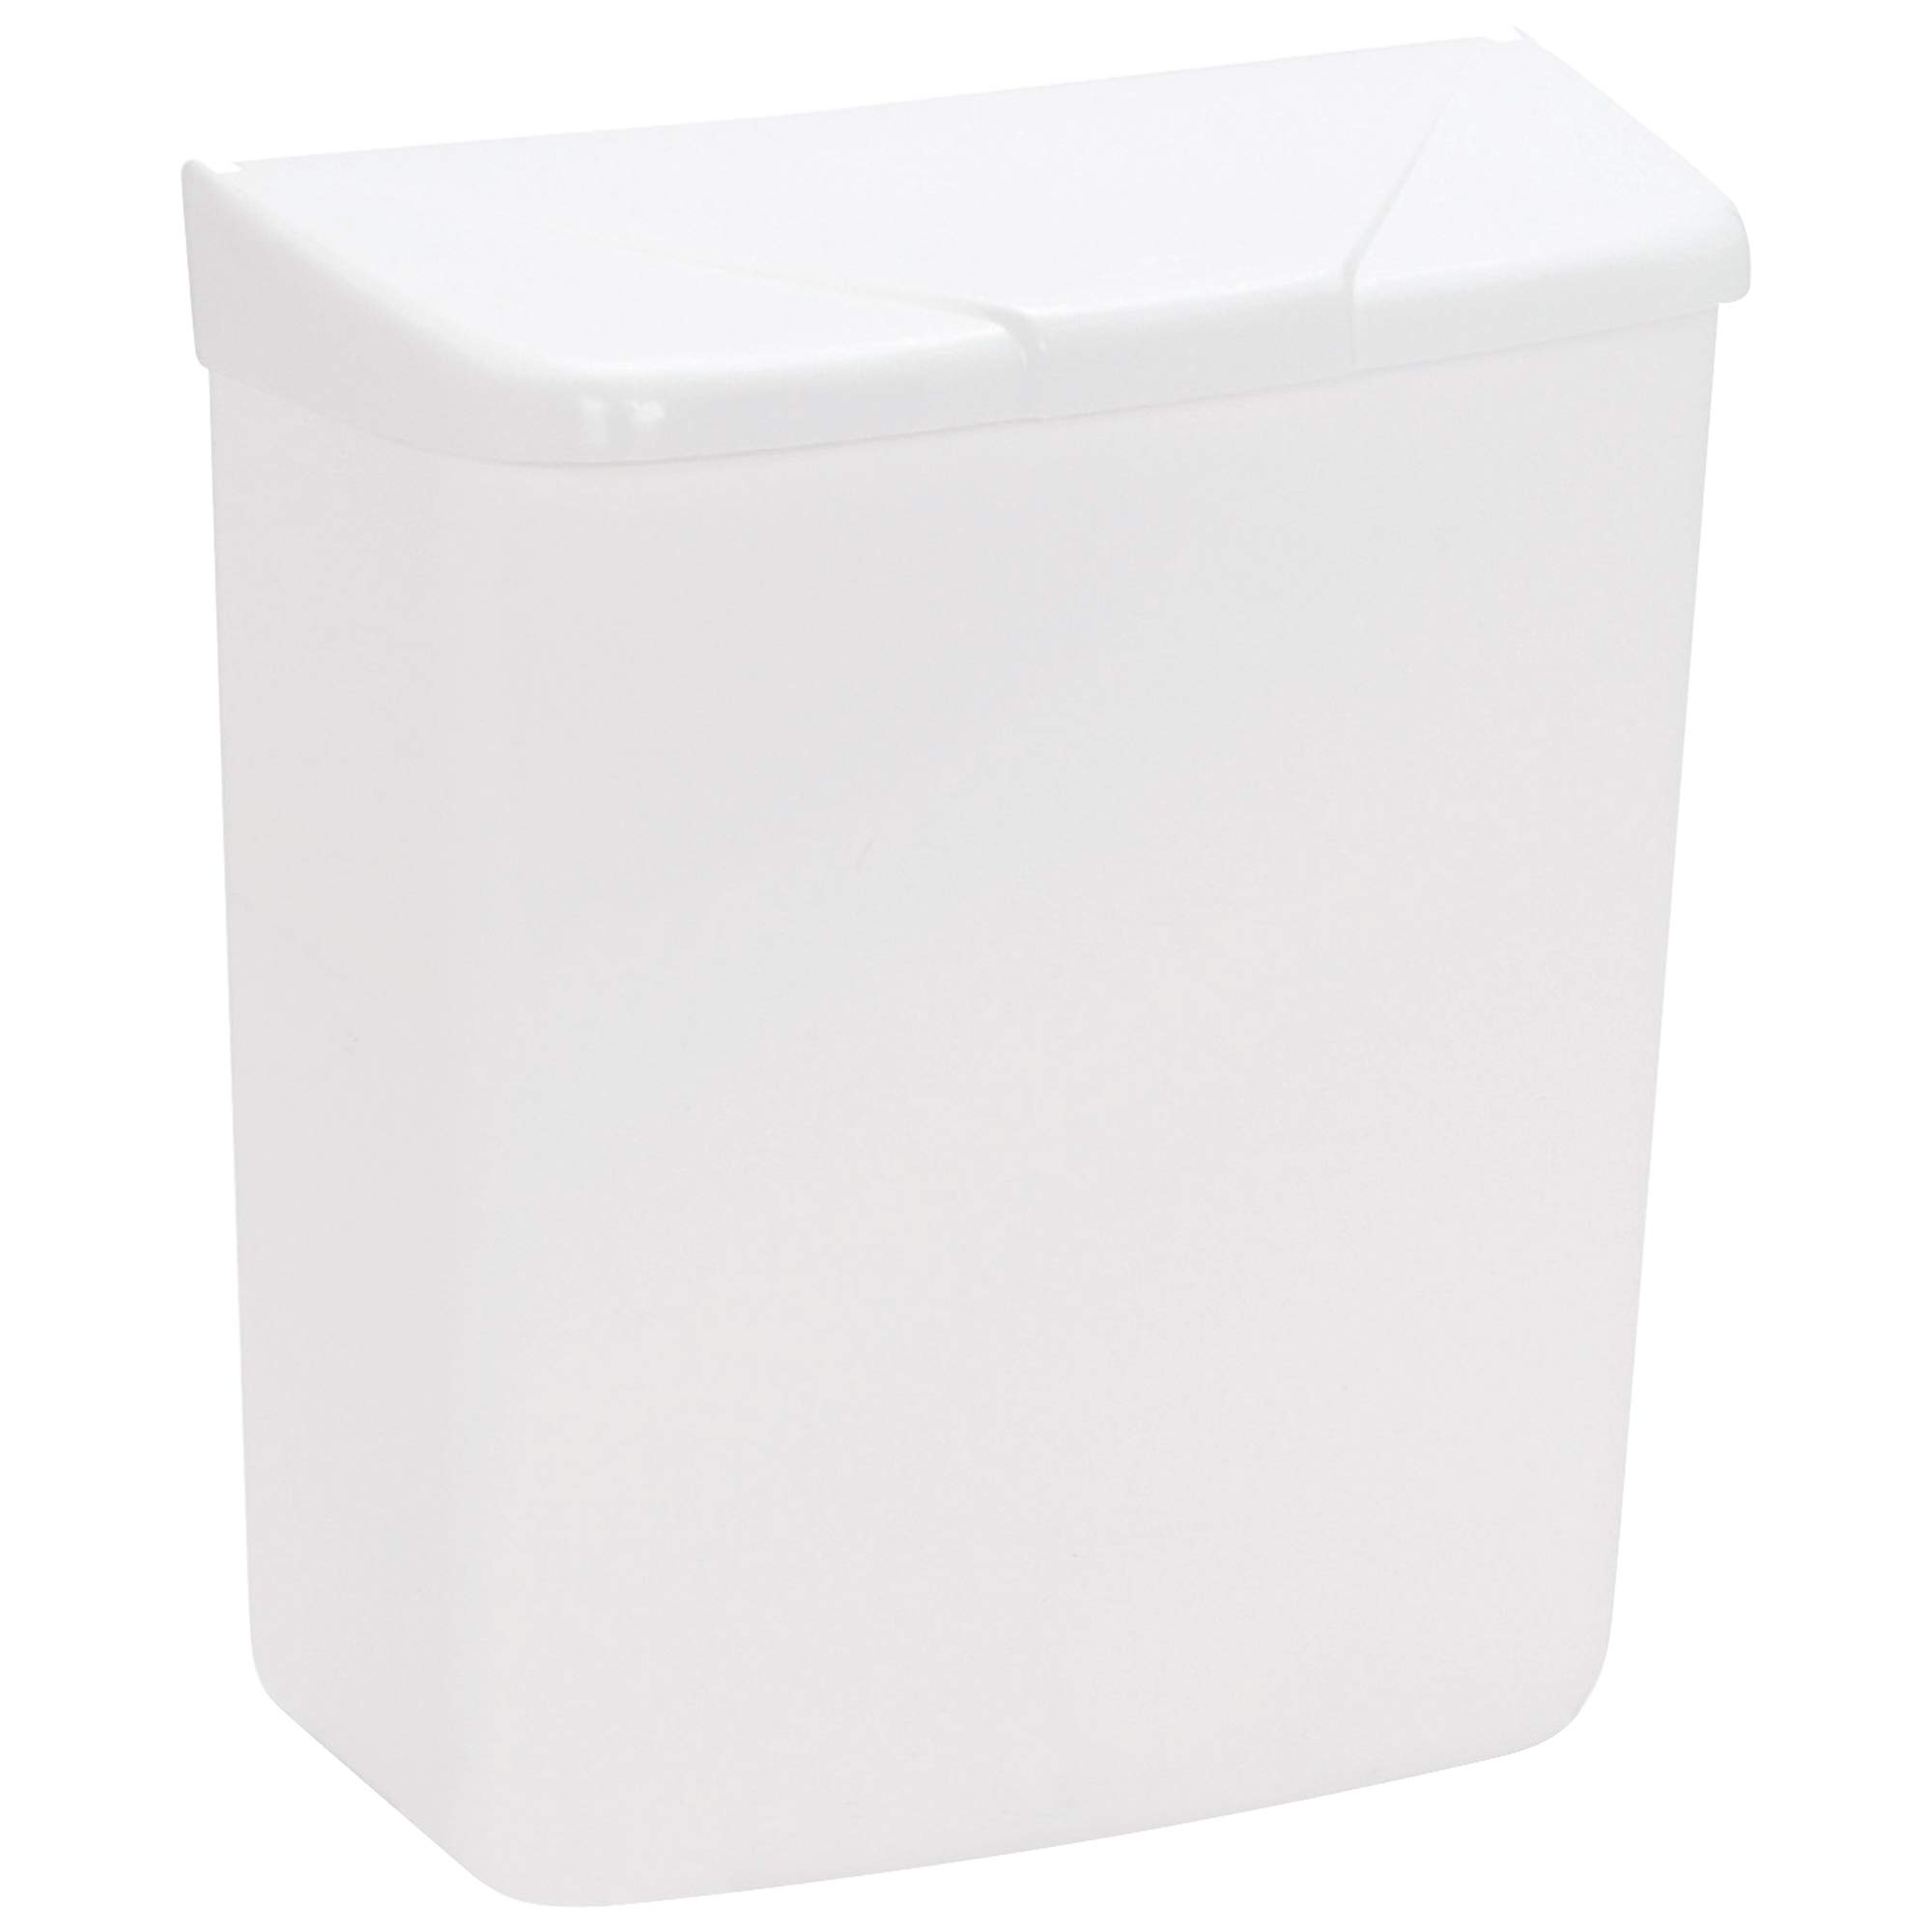 White Wall Mountable Sanitary Napkin Receptacle, 11'' x 9'' x 5'', White, 1/Case by Partners Brand